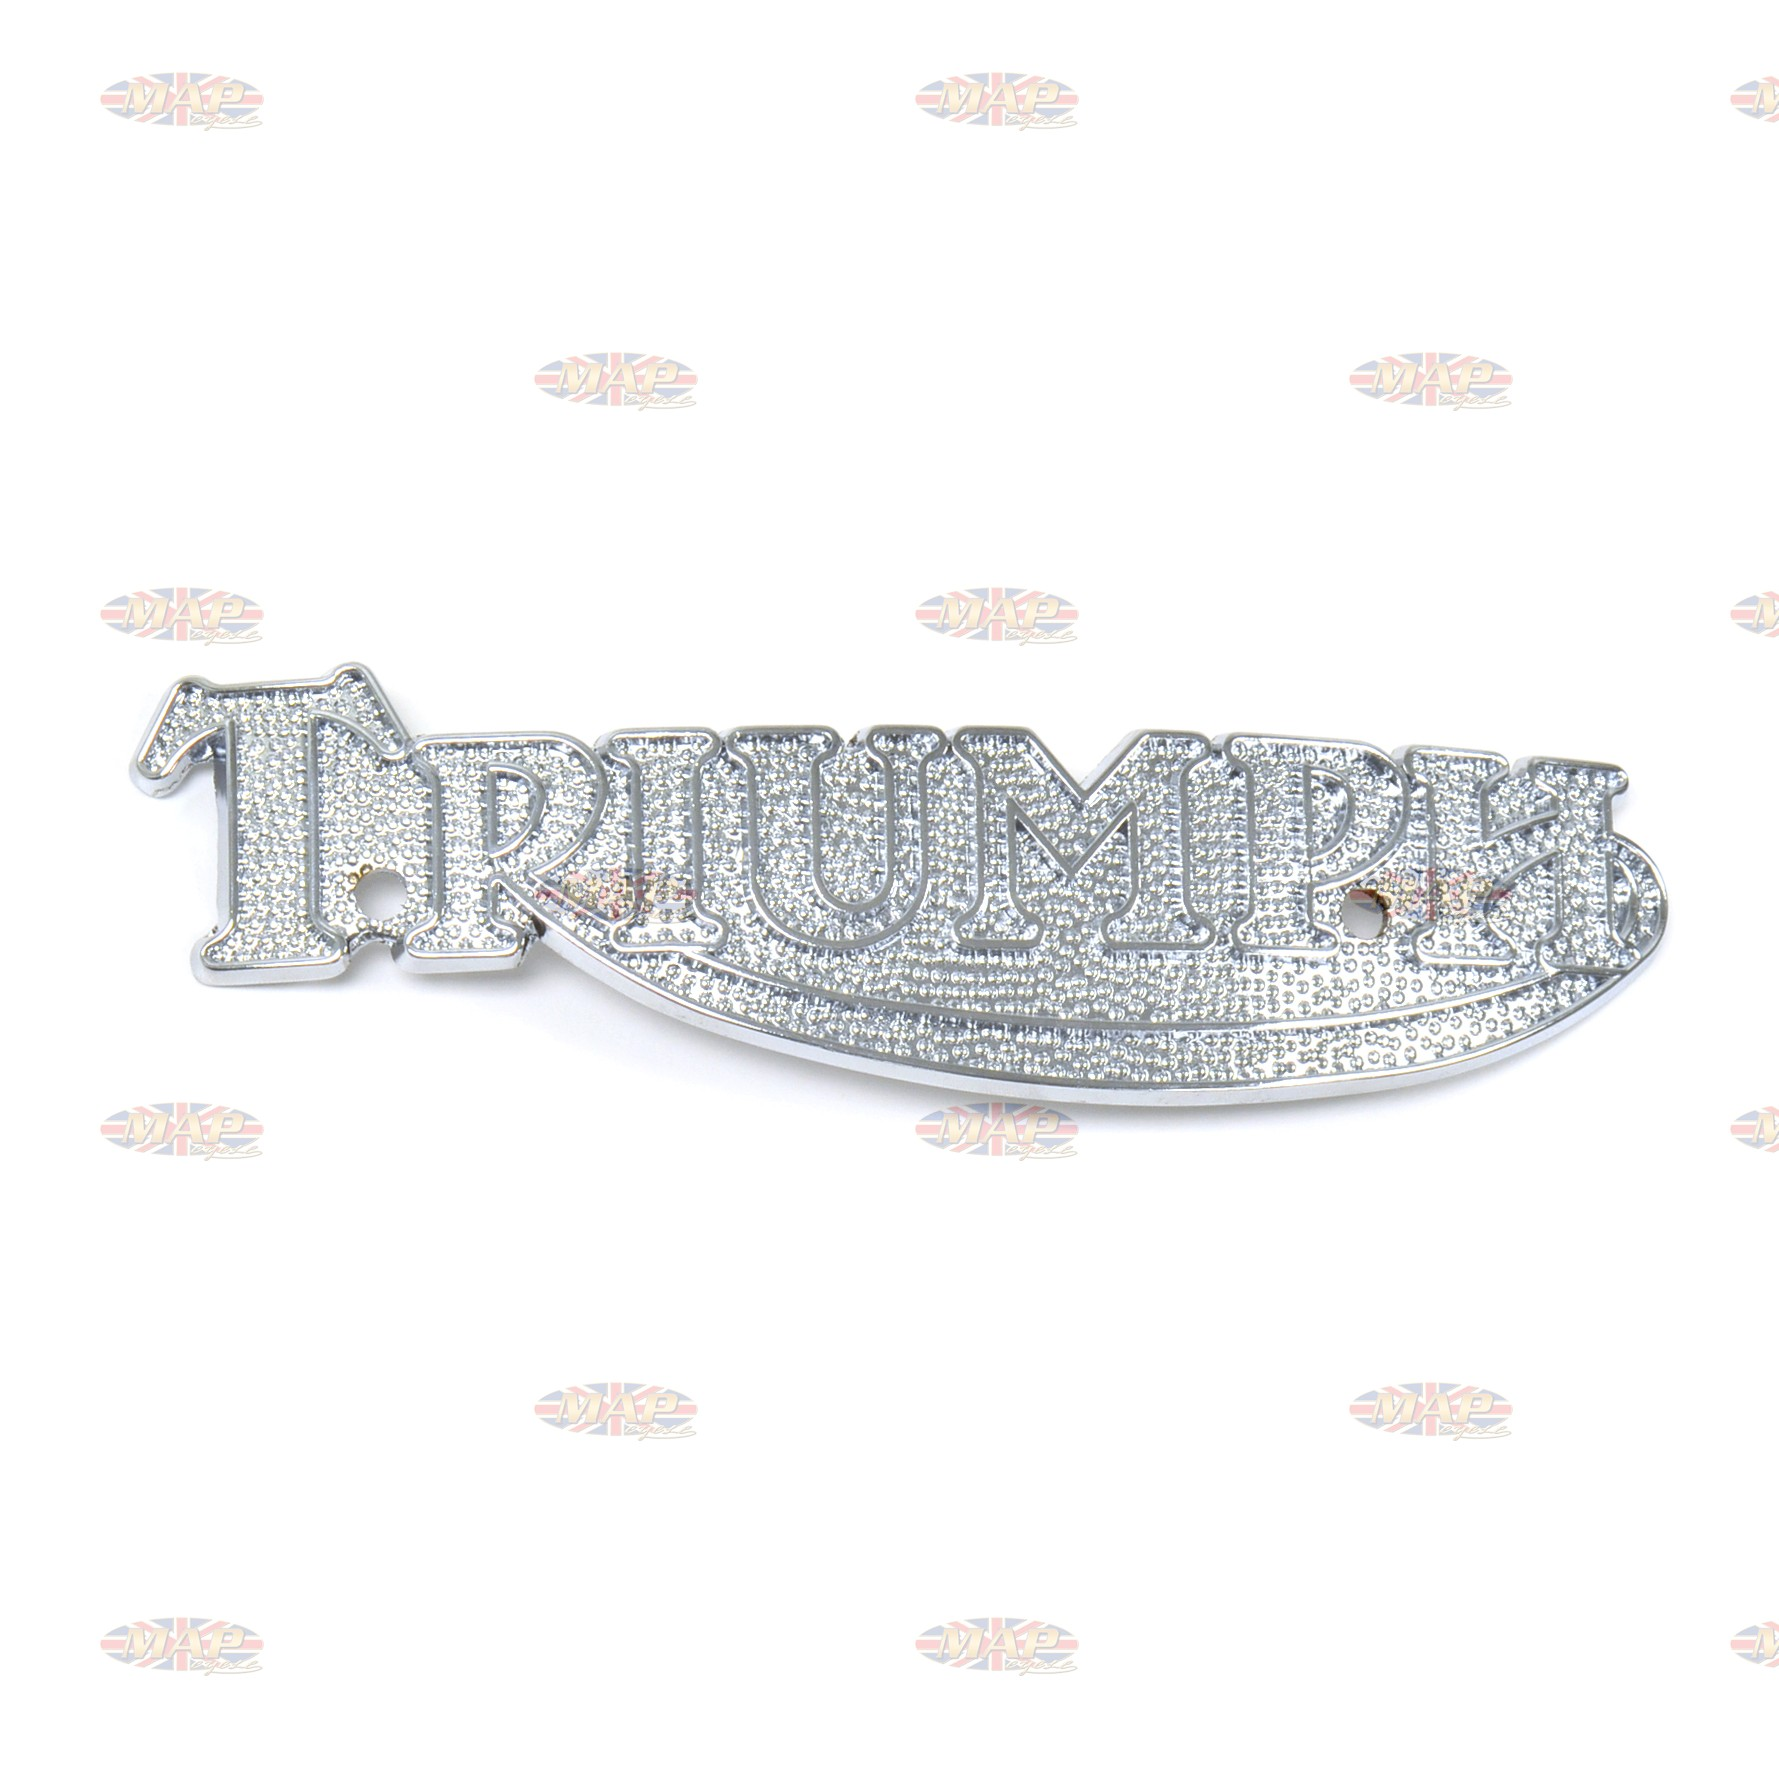 Triumph T140 T160 TR7 Chrome Tank Badge (sold individually) 83-5361